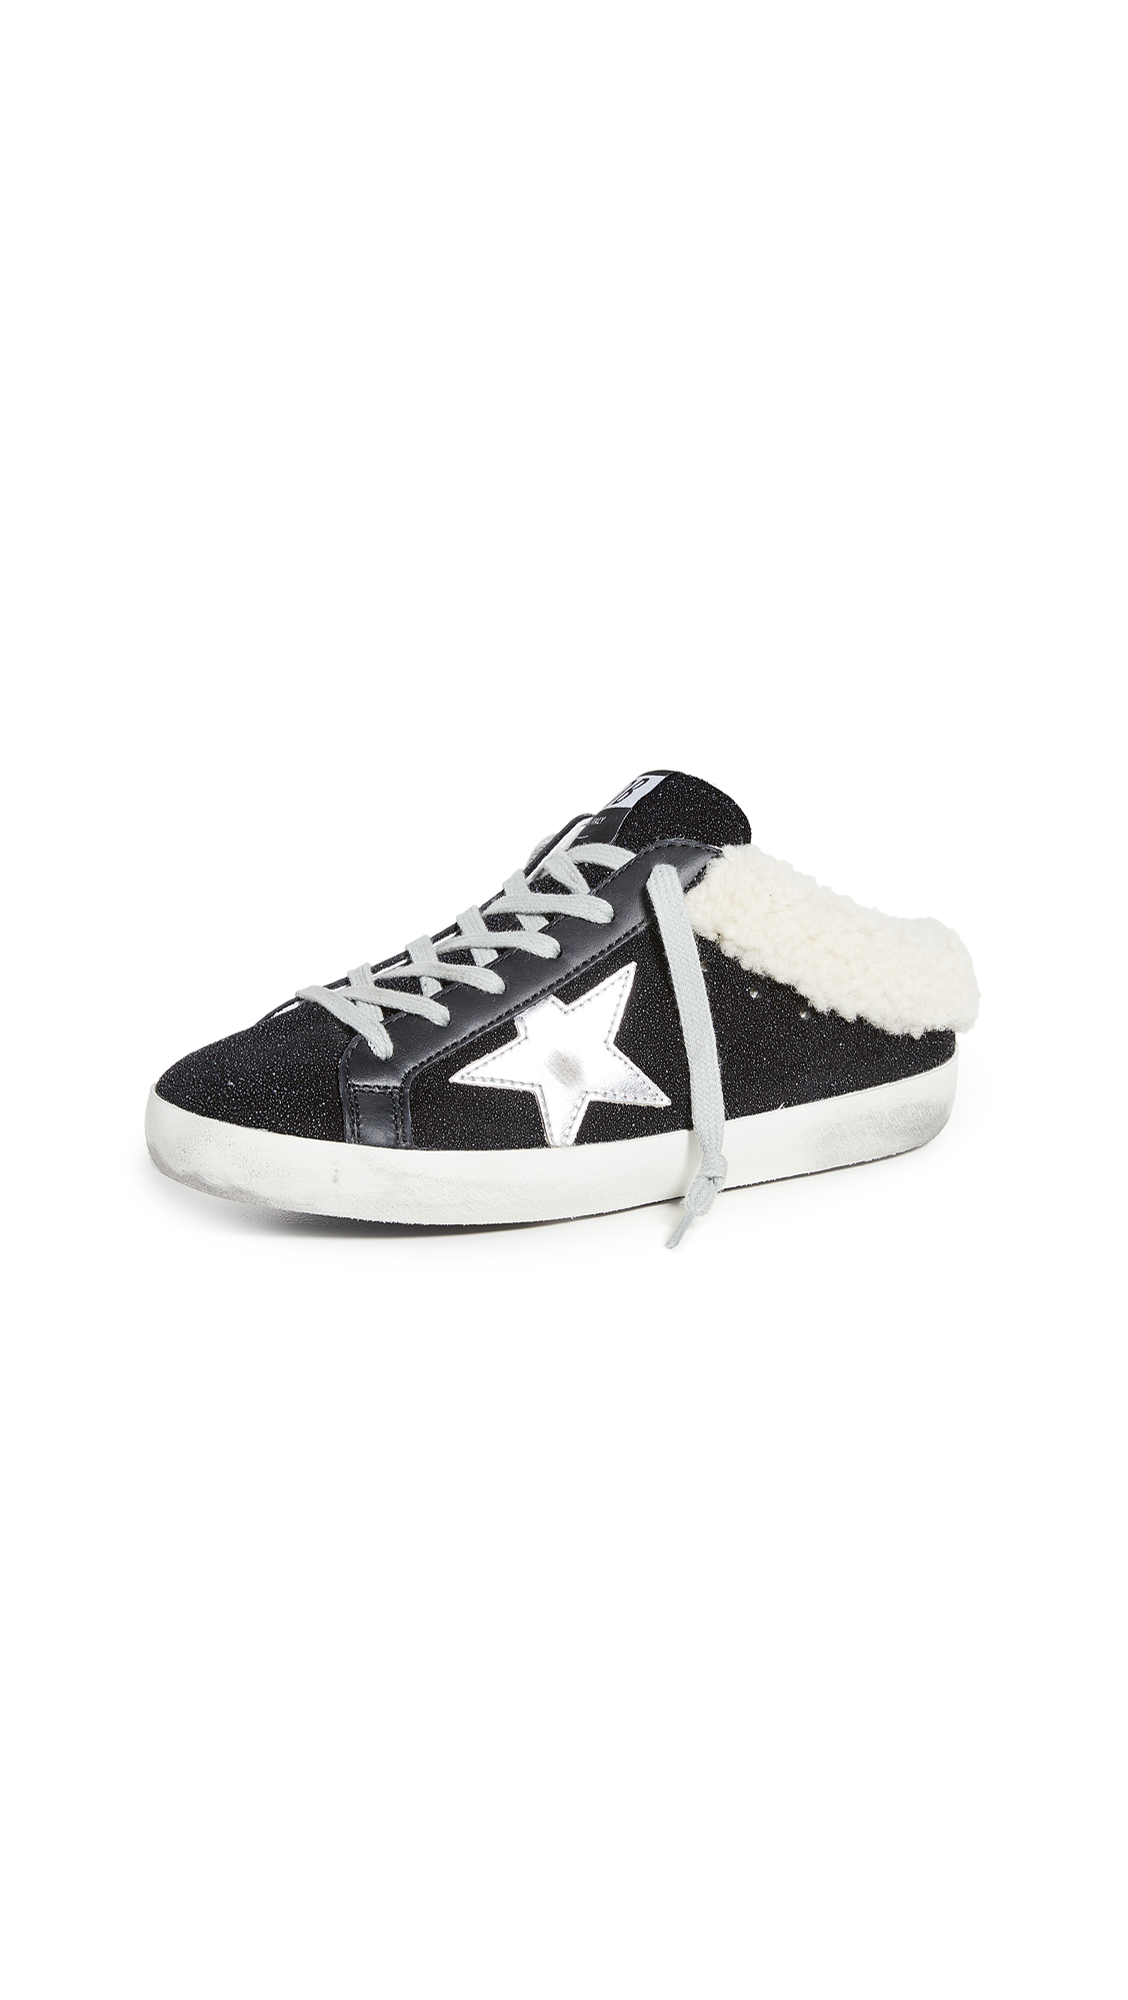 Golden Goose Sabot Shearling Sneakers